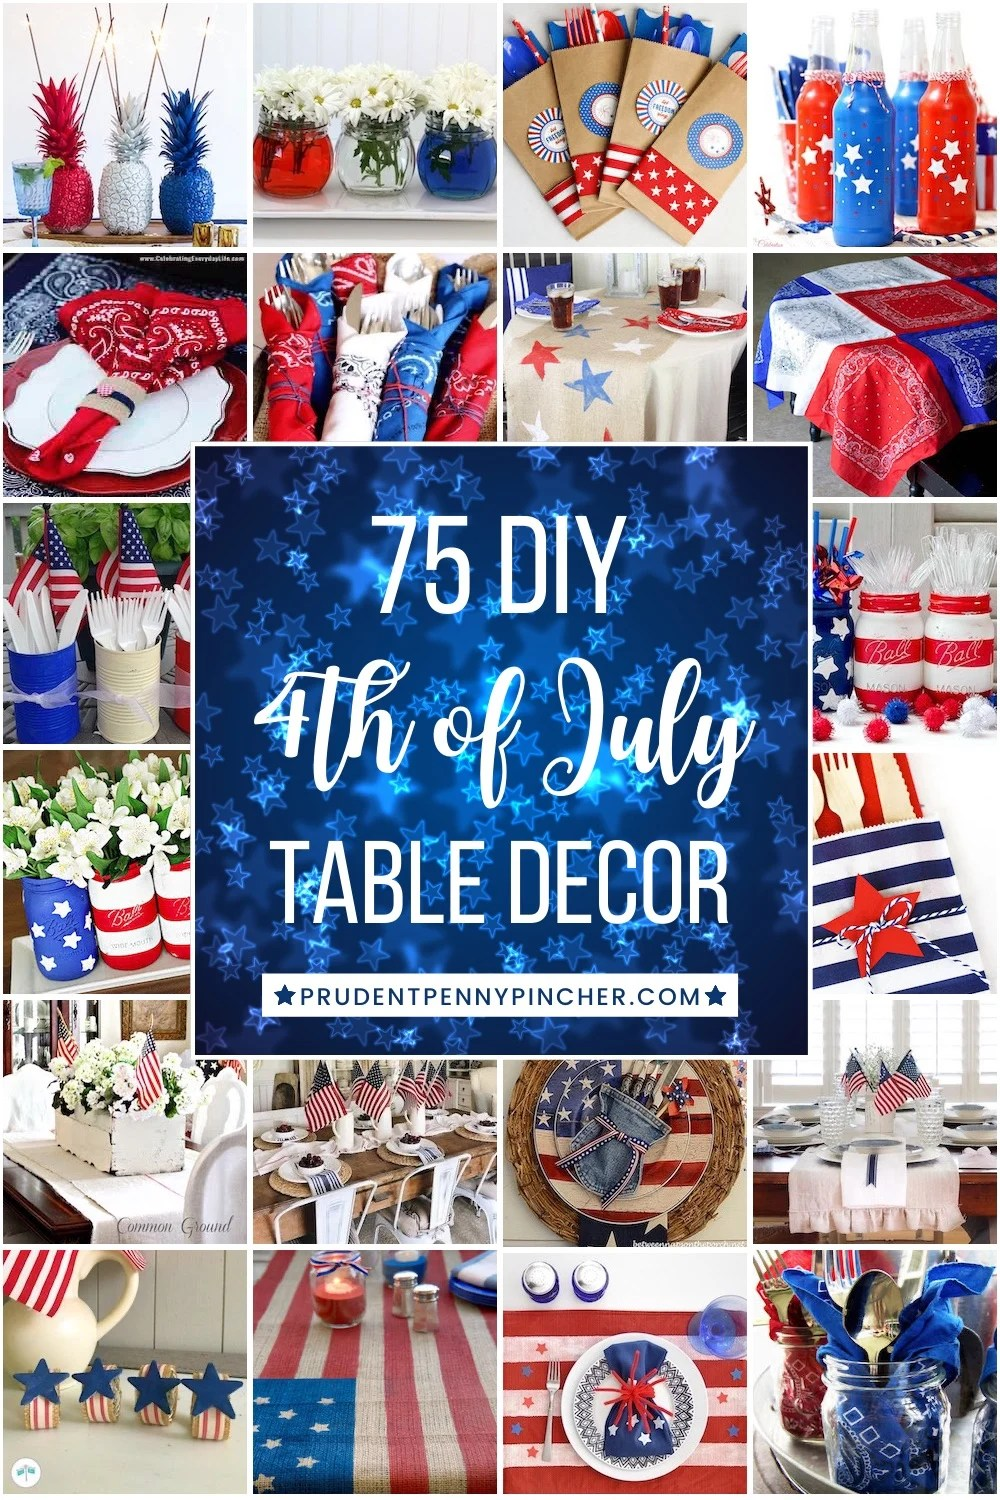 75 DIY 4th of July Table Decorations